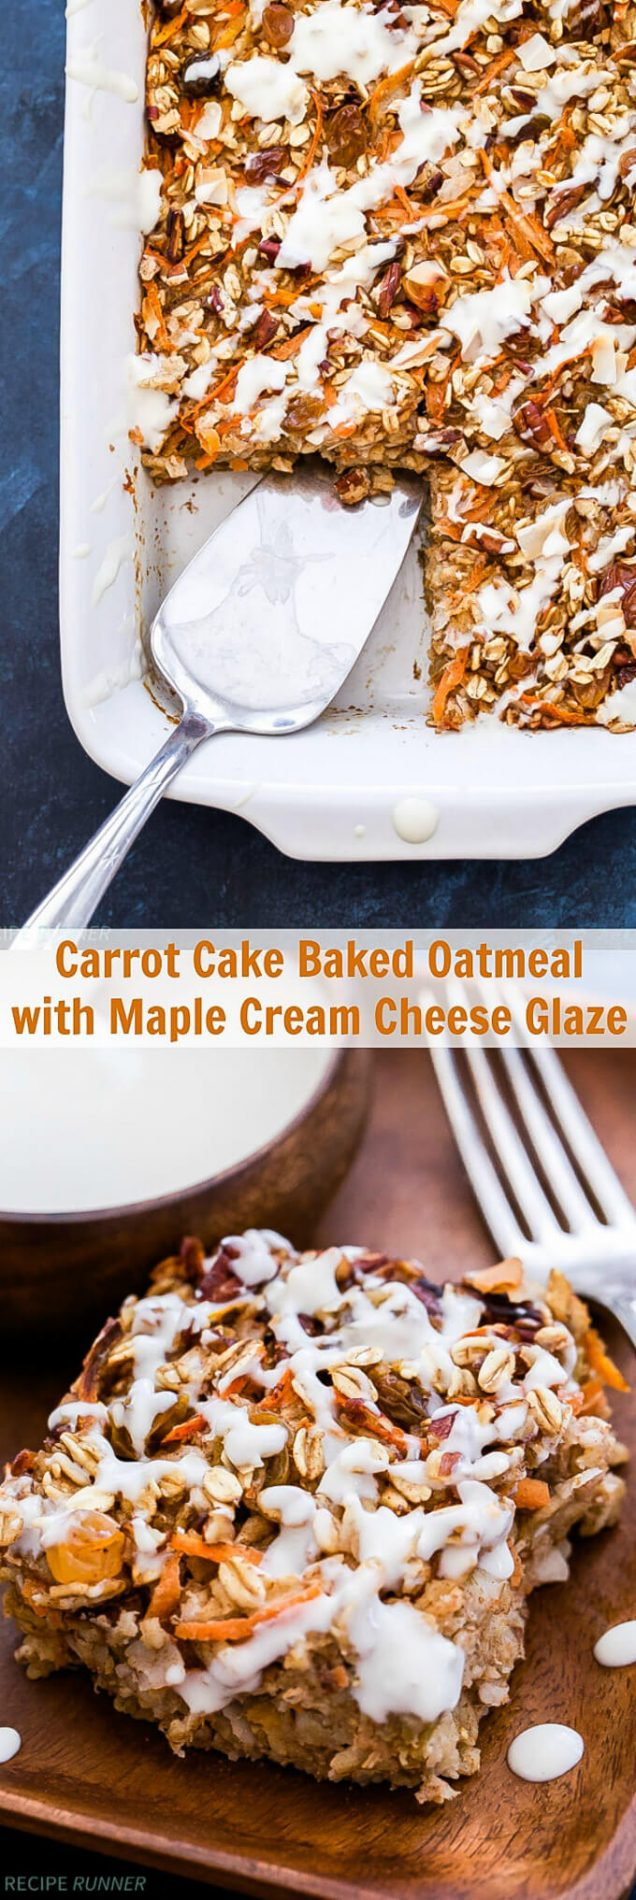 All The Pasta You Can Eat With Olive Garden S Never Ending: Carrot Cake Baked Oatmeal With Maple Cream Cheese Glaze